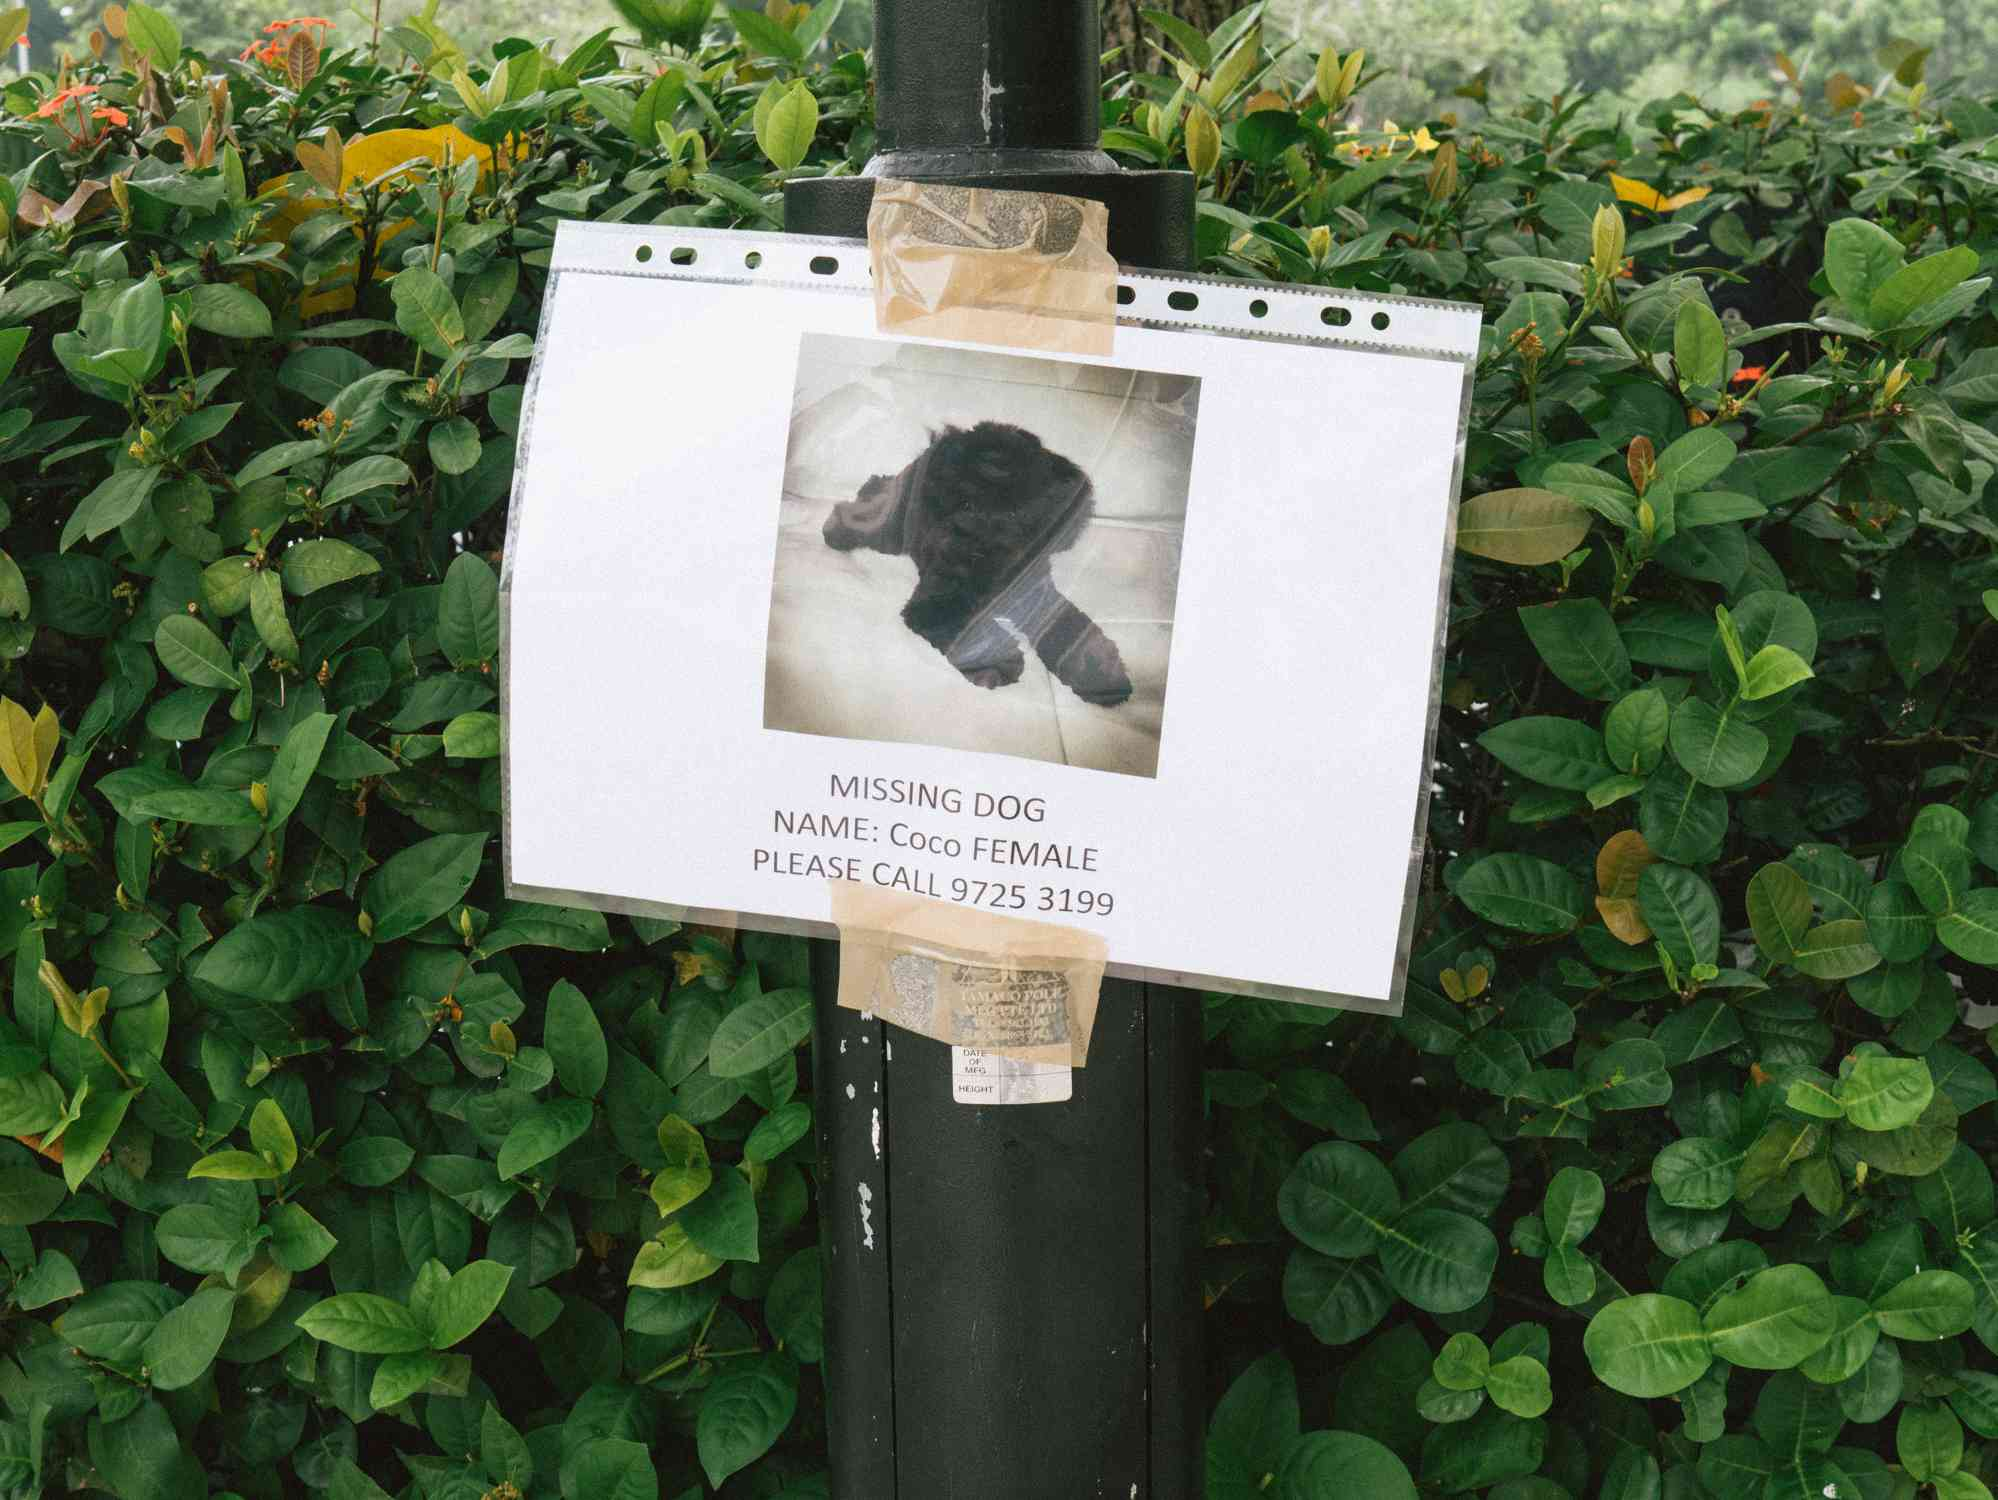 A lost dog poster with information on a poll.